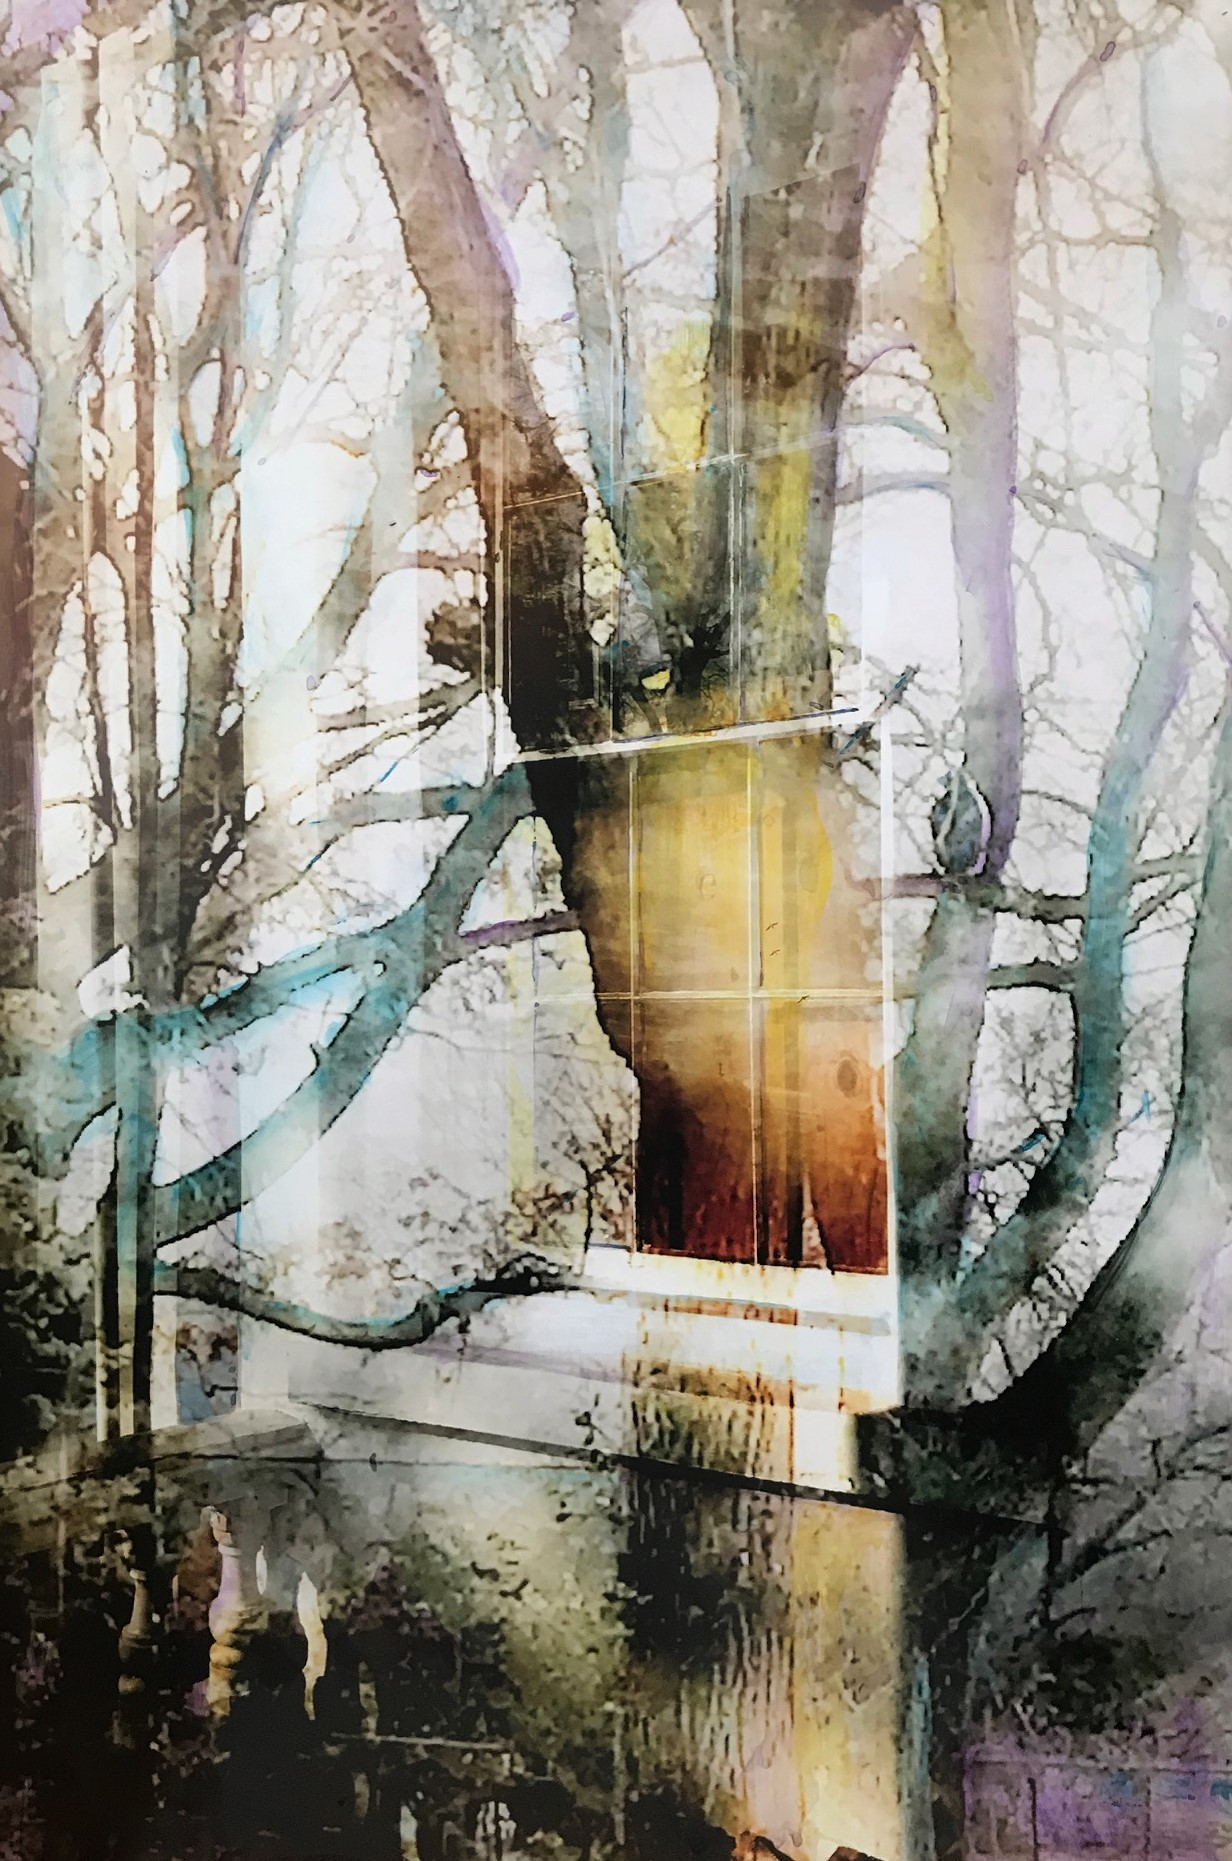 Visions and portals - Kathryn Barker.jpg